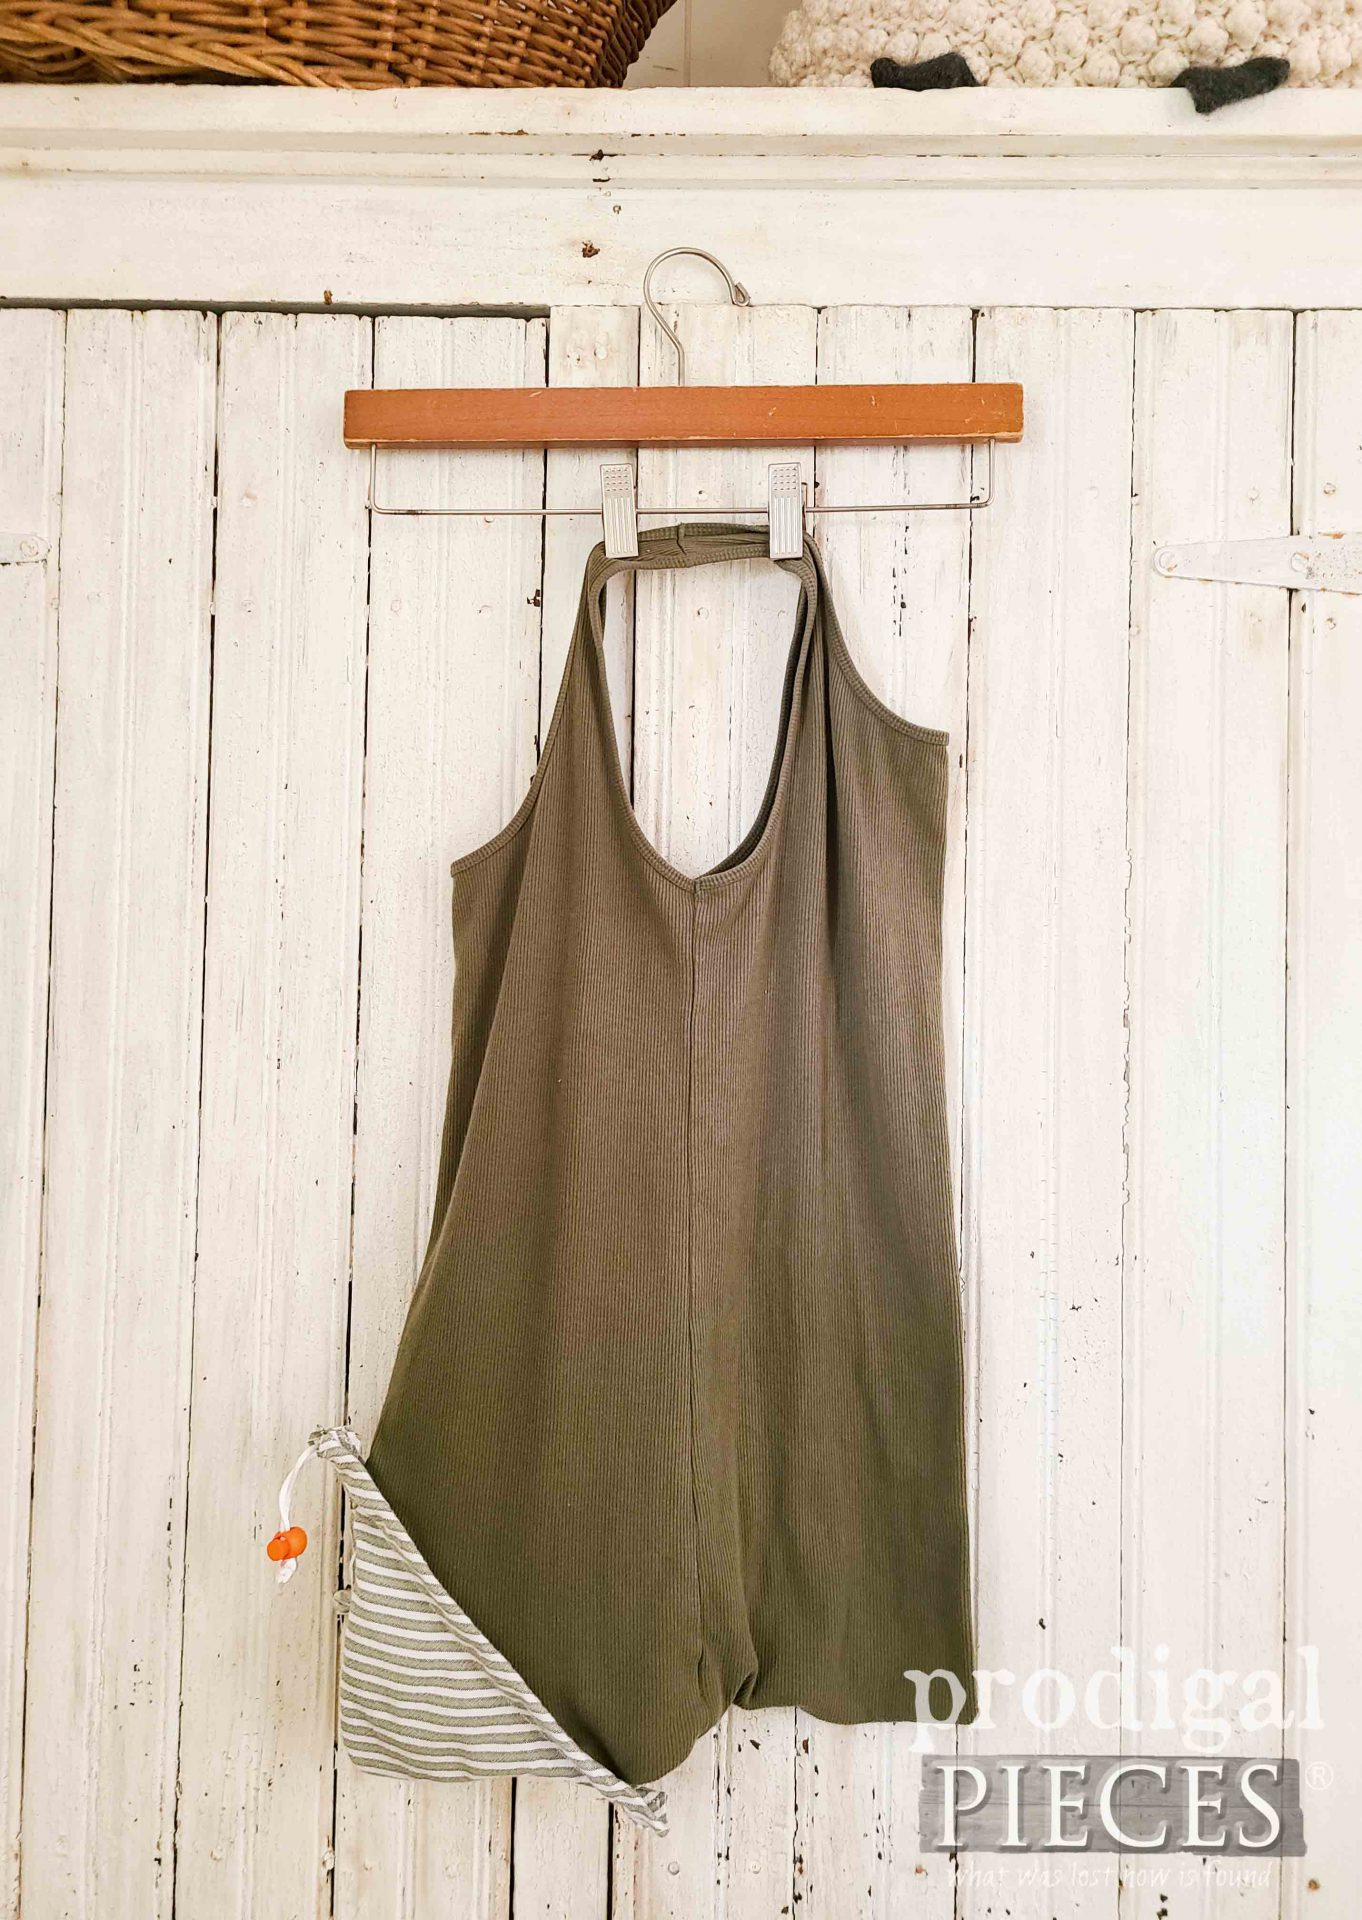 Refashioned Tank Top Reusable Compact Shopping Bag by Larissa of Prodigal Pieces   prodigalpieces.com #prodigalpieces #refashion #upcycle #diy #sewing #crafts #shopping